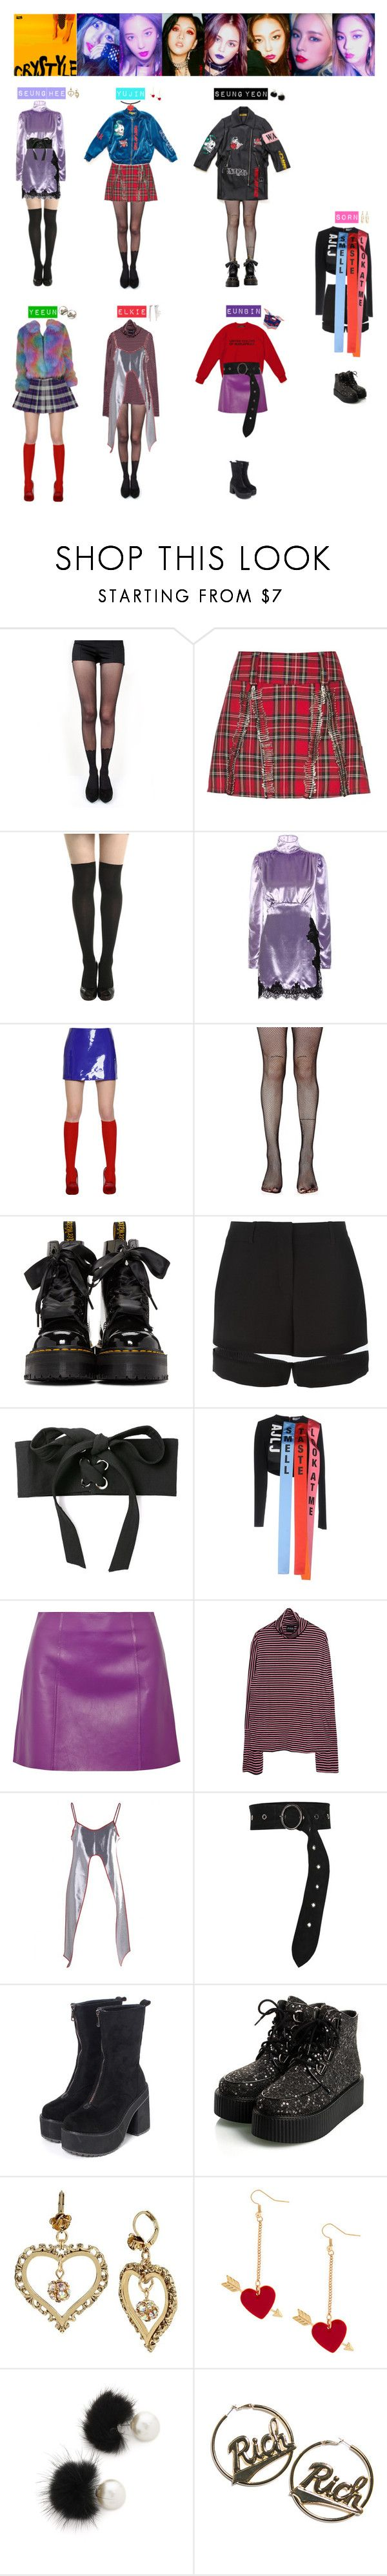 """""""CLC - HOBGOBLIN❤️💙💜💚💛"""" by vvvan99 ❤ liked on Polyvore featuring Pretty Polly, Alessandra Rich, Au Jour Le Jour, Music Legs, Dr. Martens, Alexander Wang, T By Alexander Wang, Bobby Kolade, Dorothee Schumacher and Betsey Johnson"""